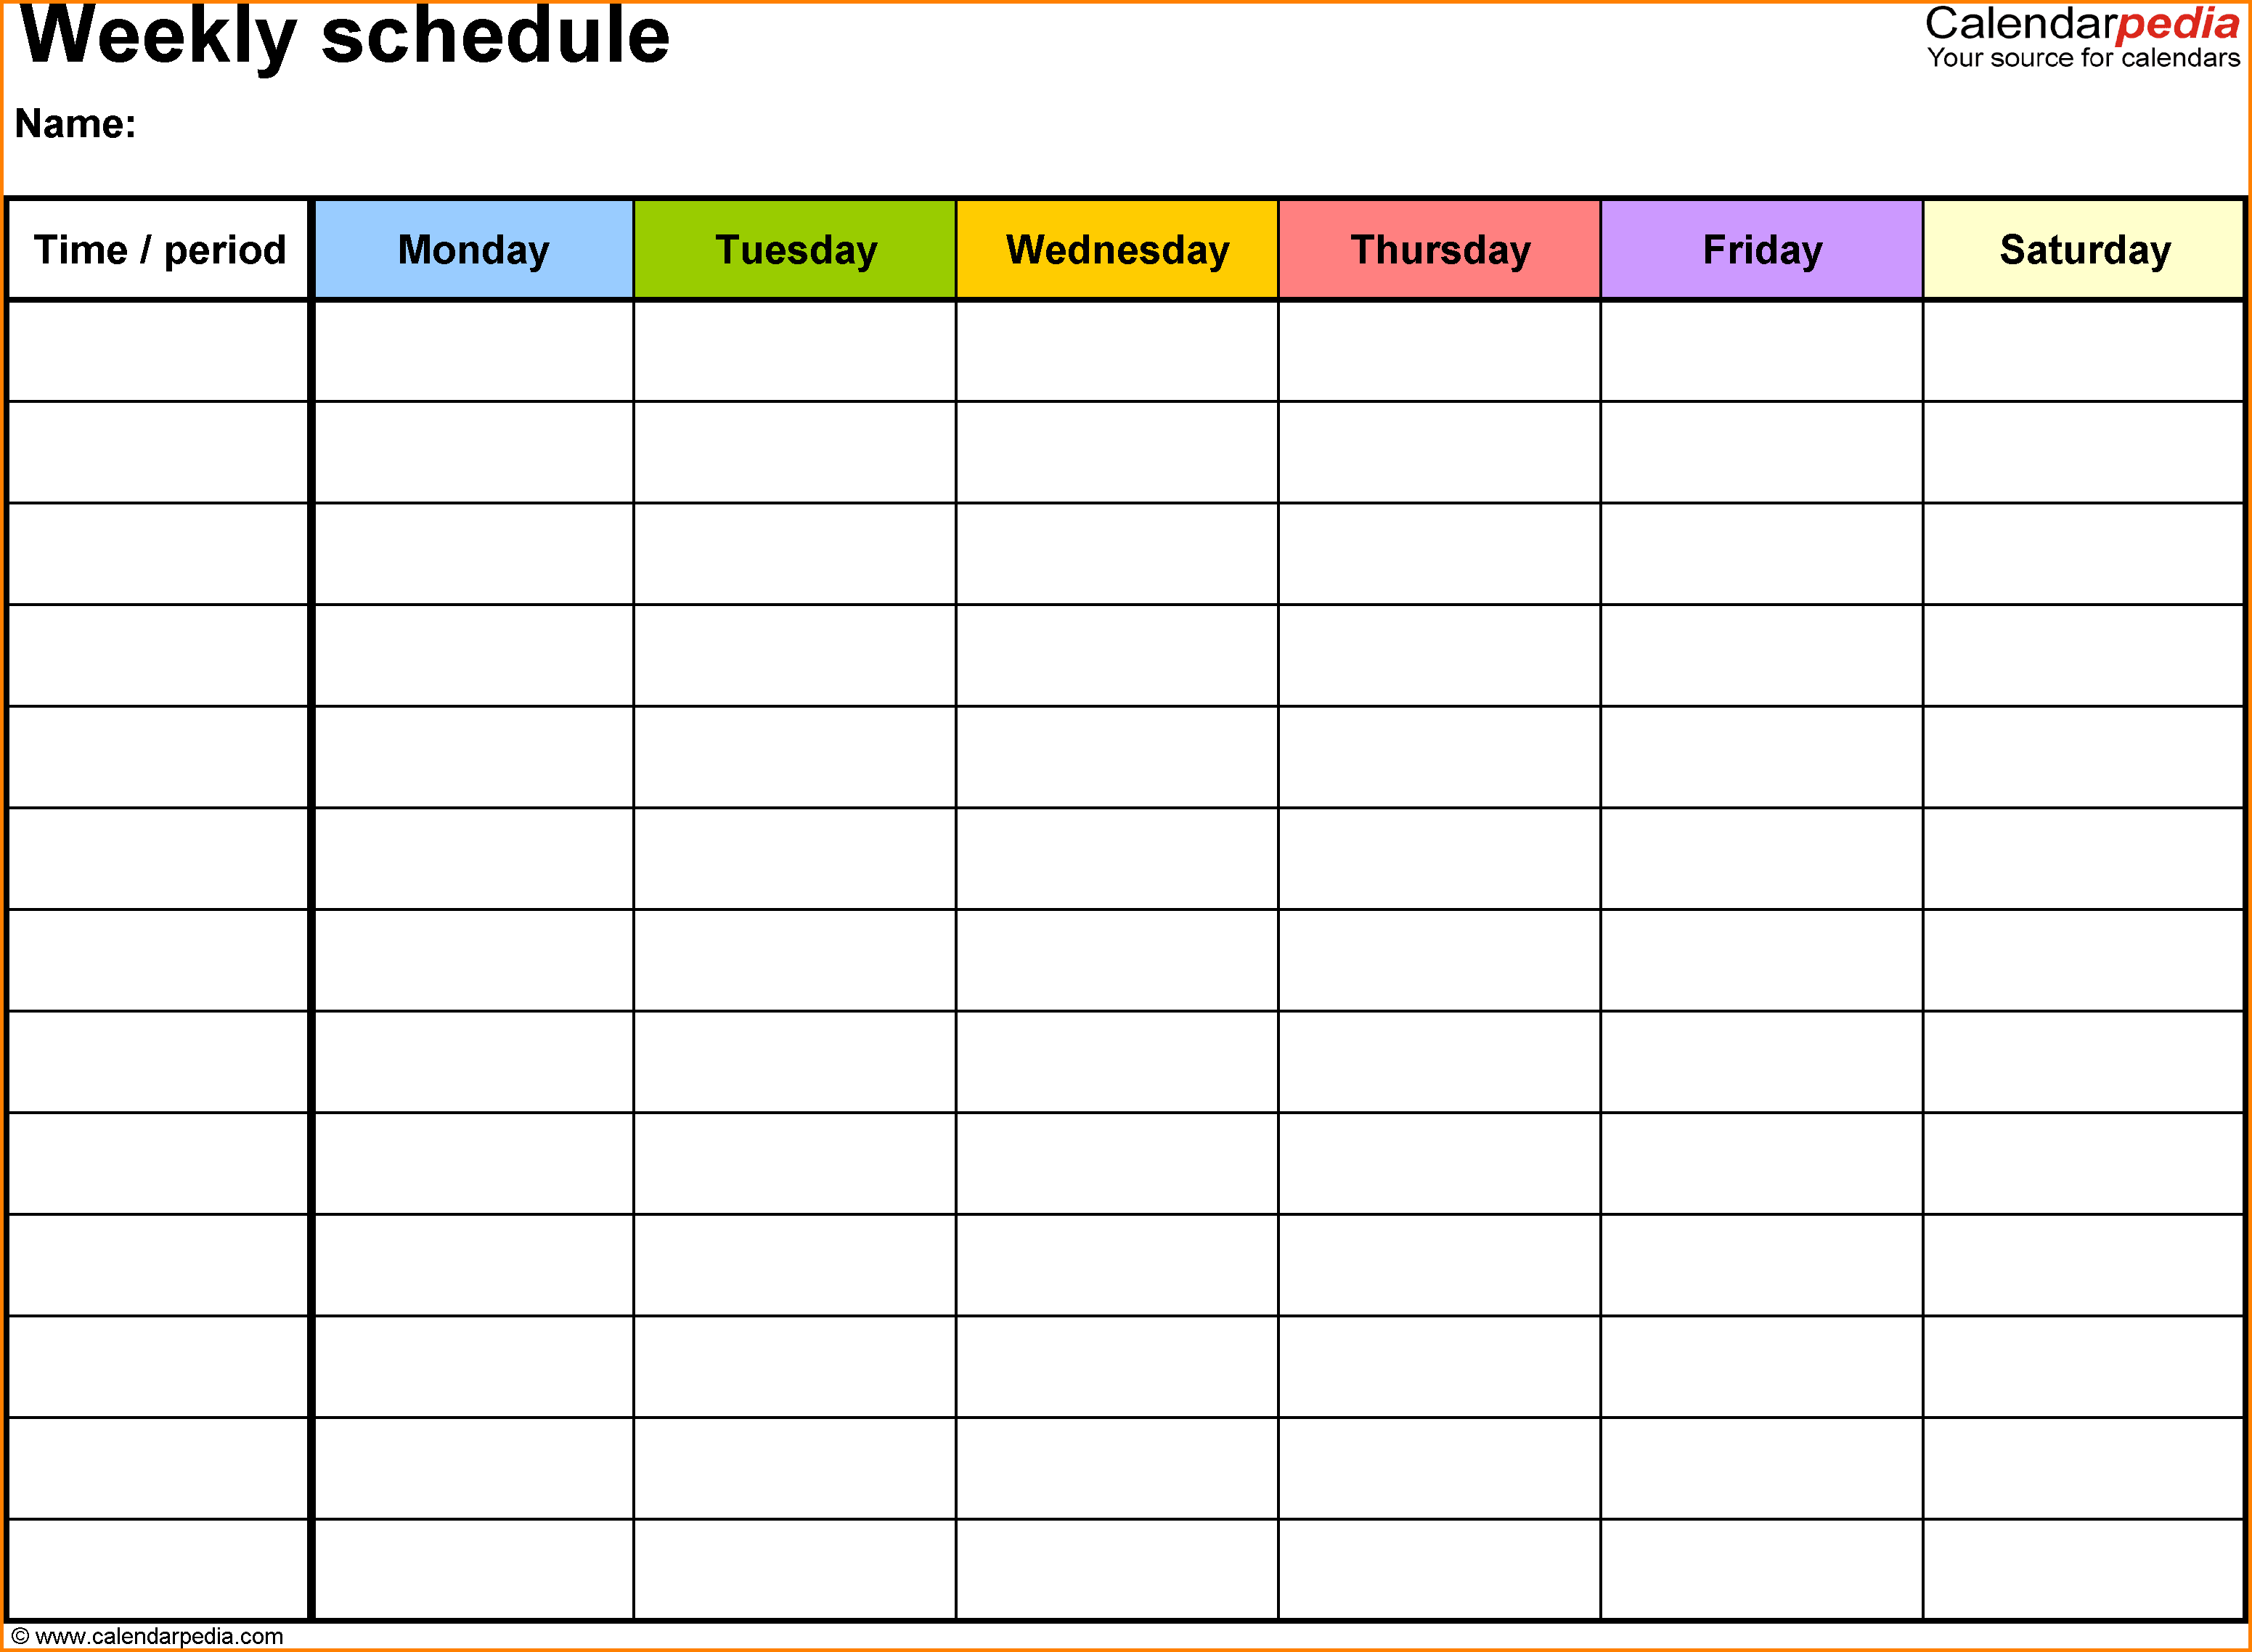 School Schedule Templates.weekly Schedule Word.png - PNG Timetable